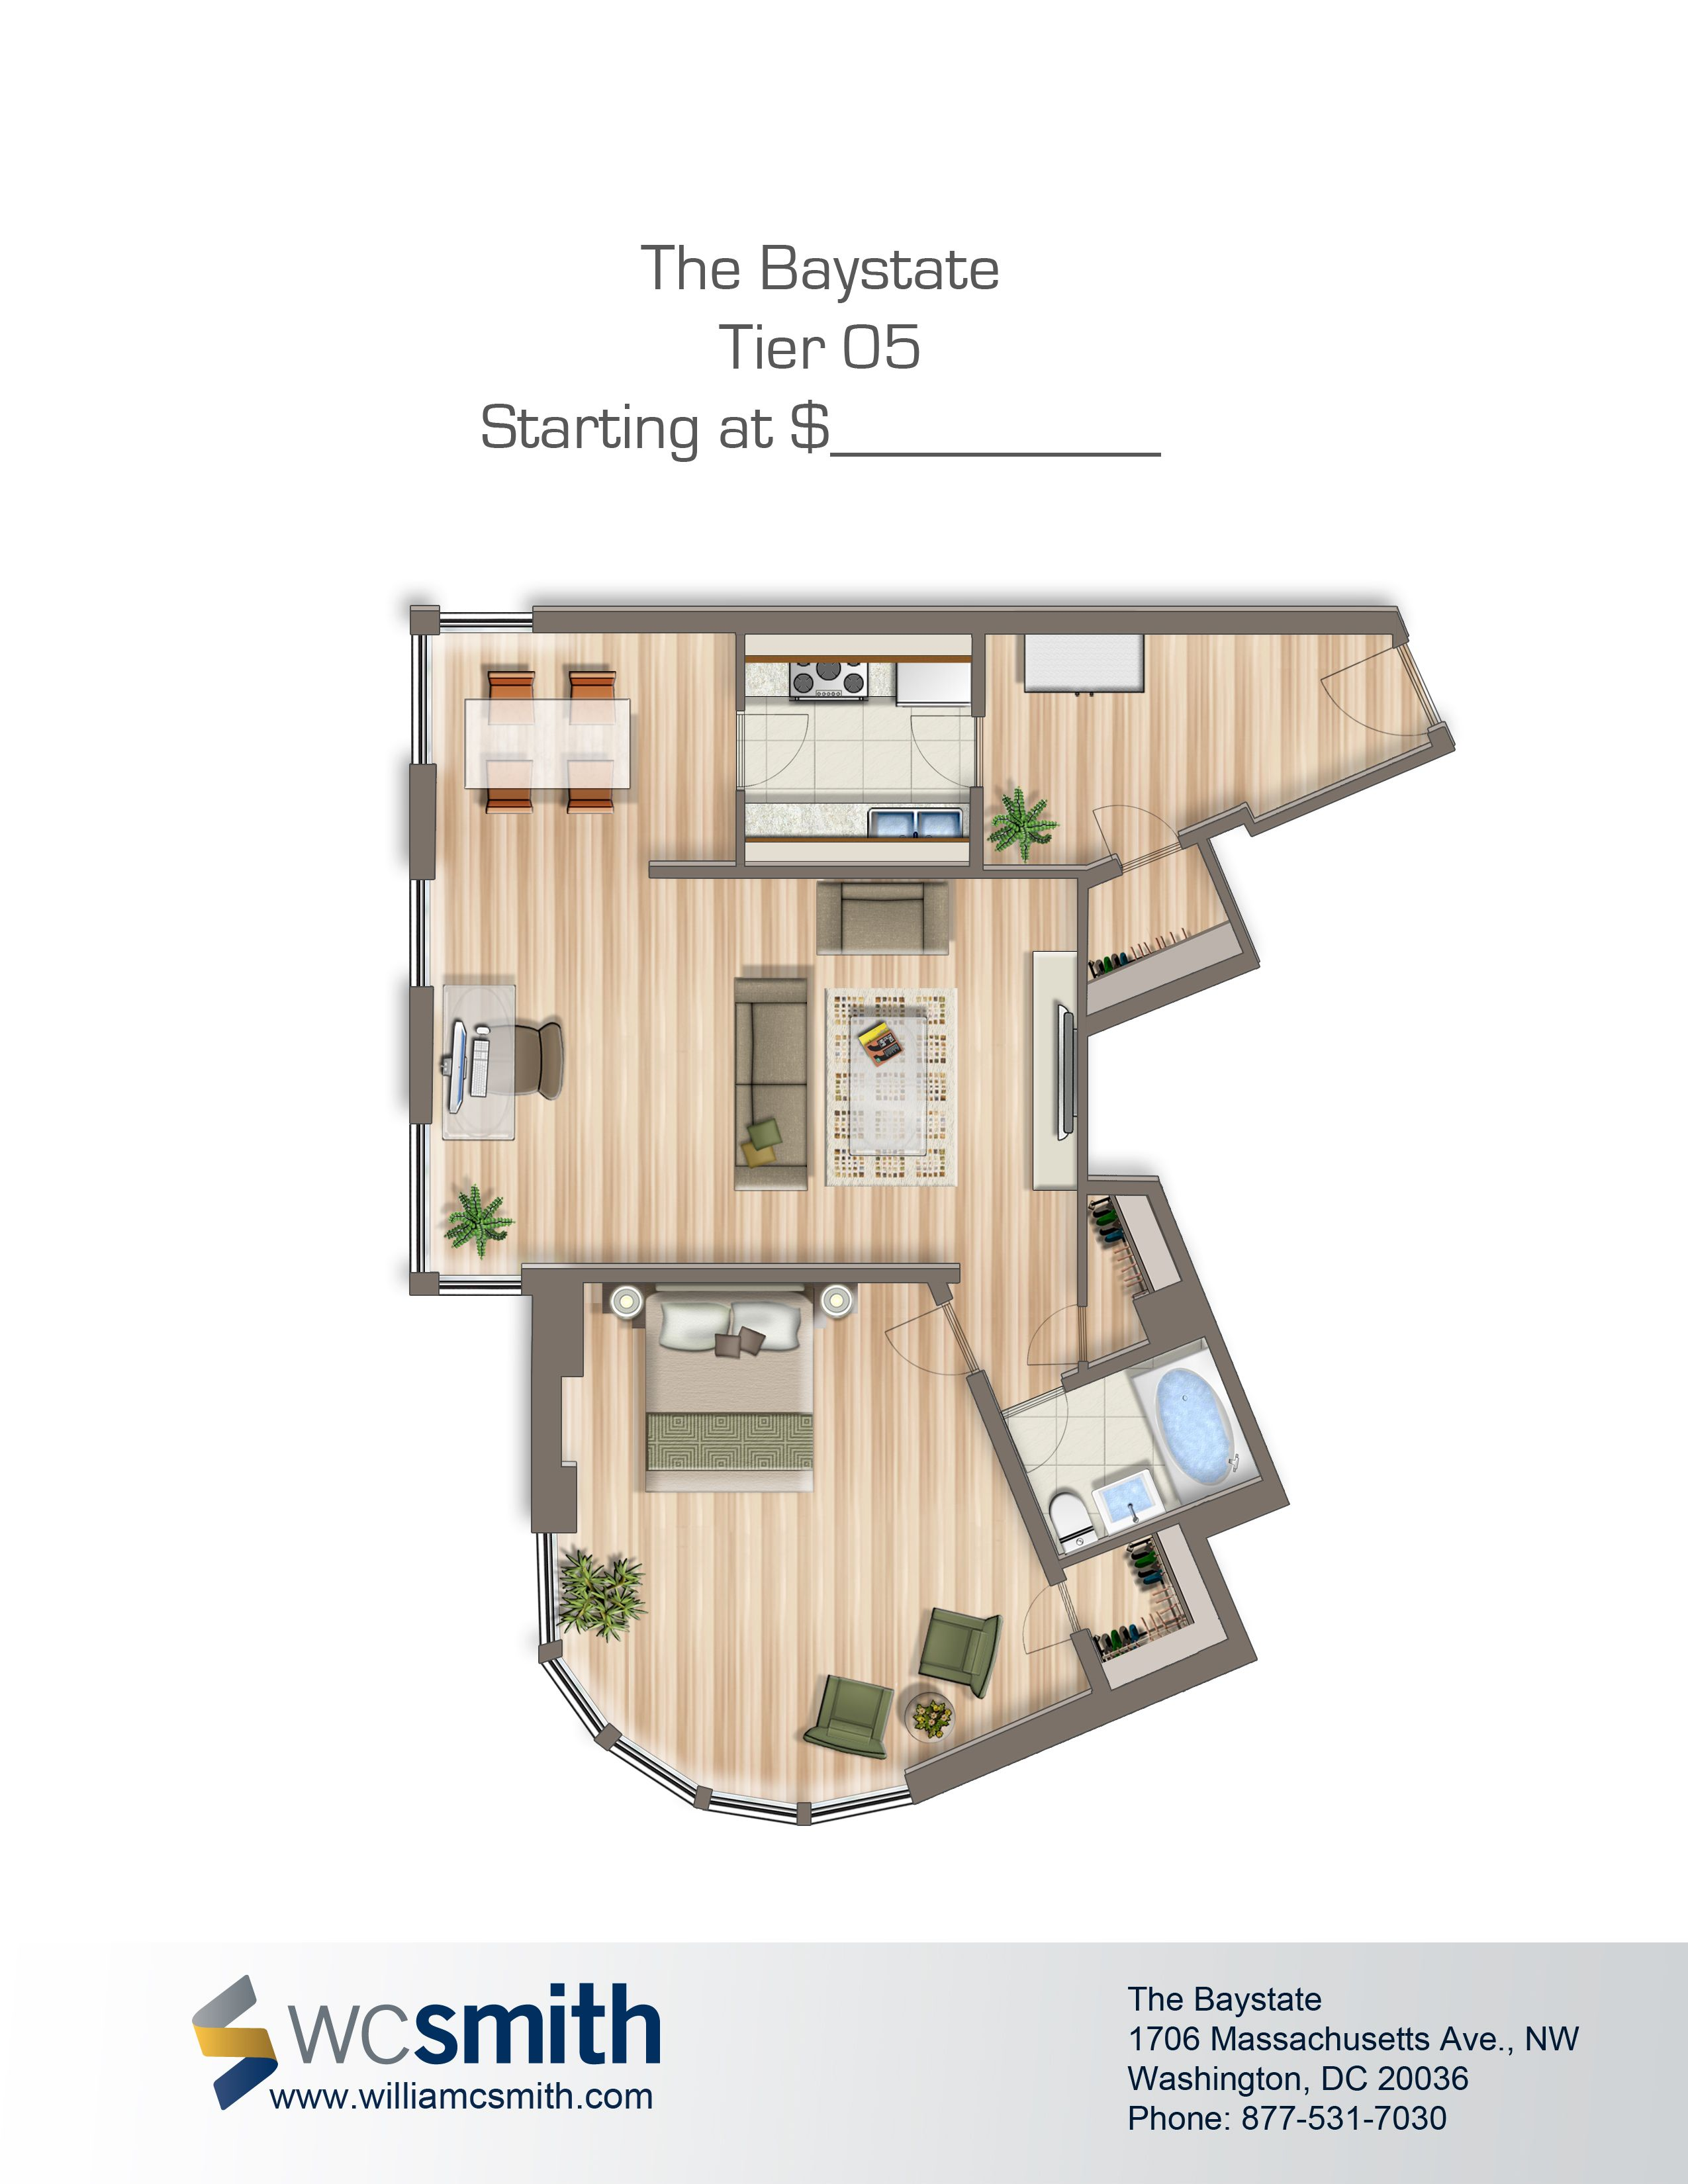 Baystate Apartments Tiny house plans, Apartment